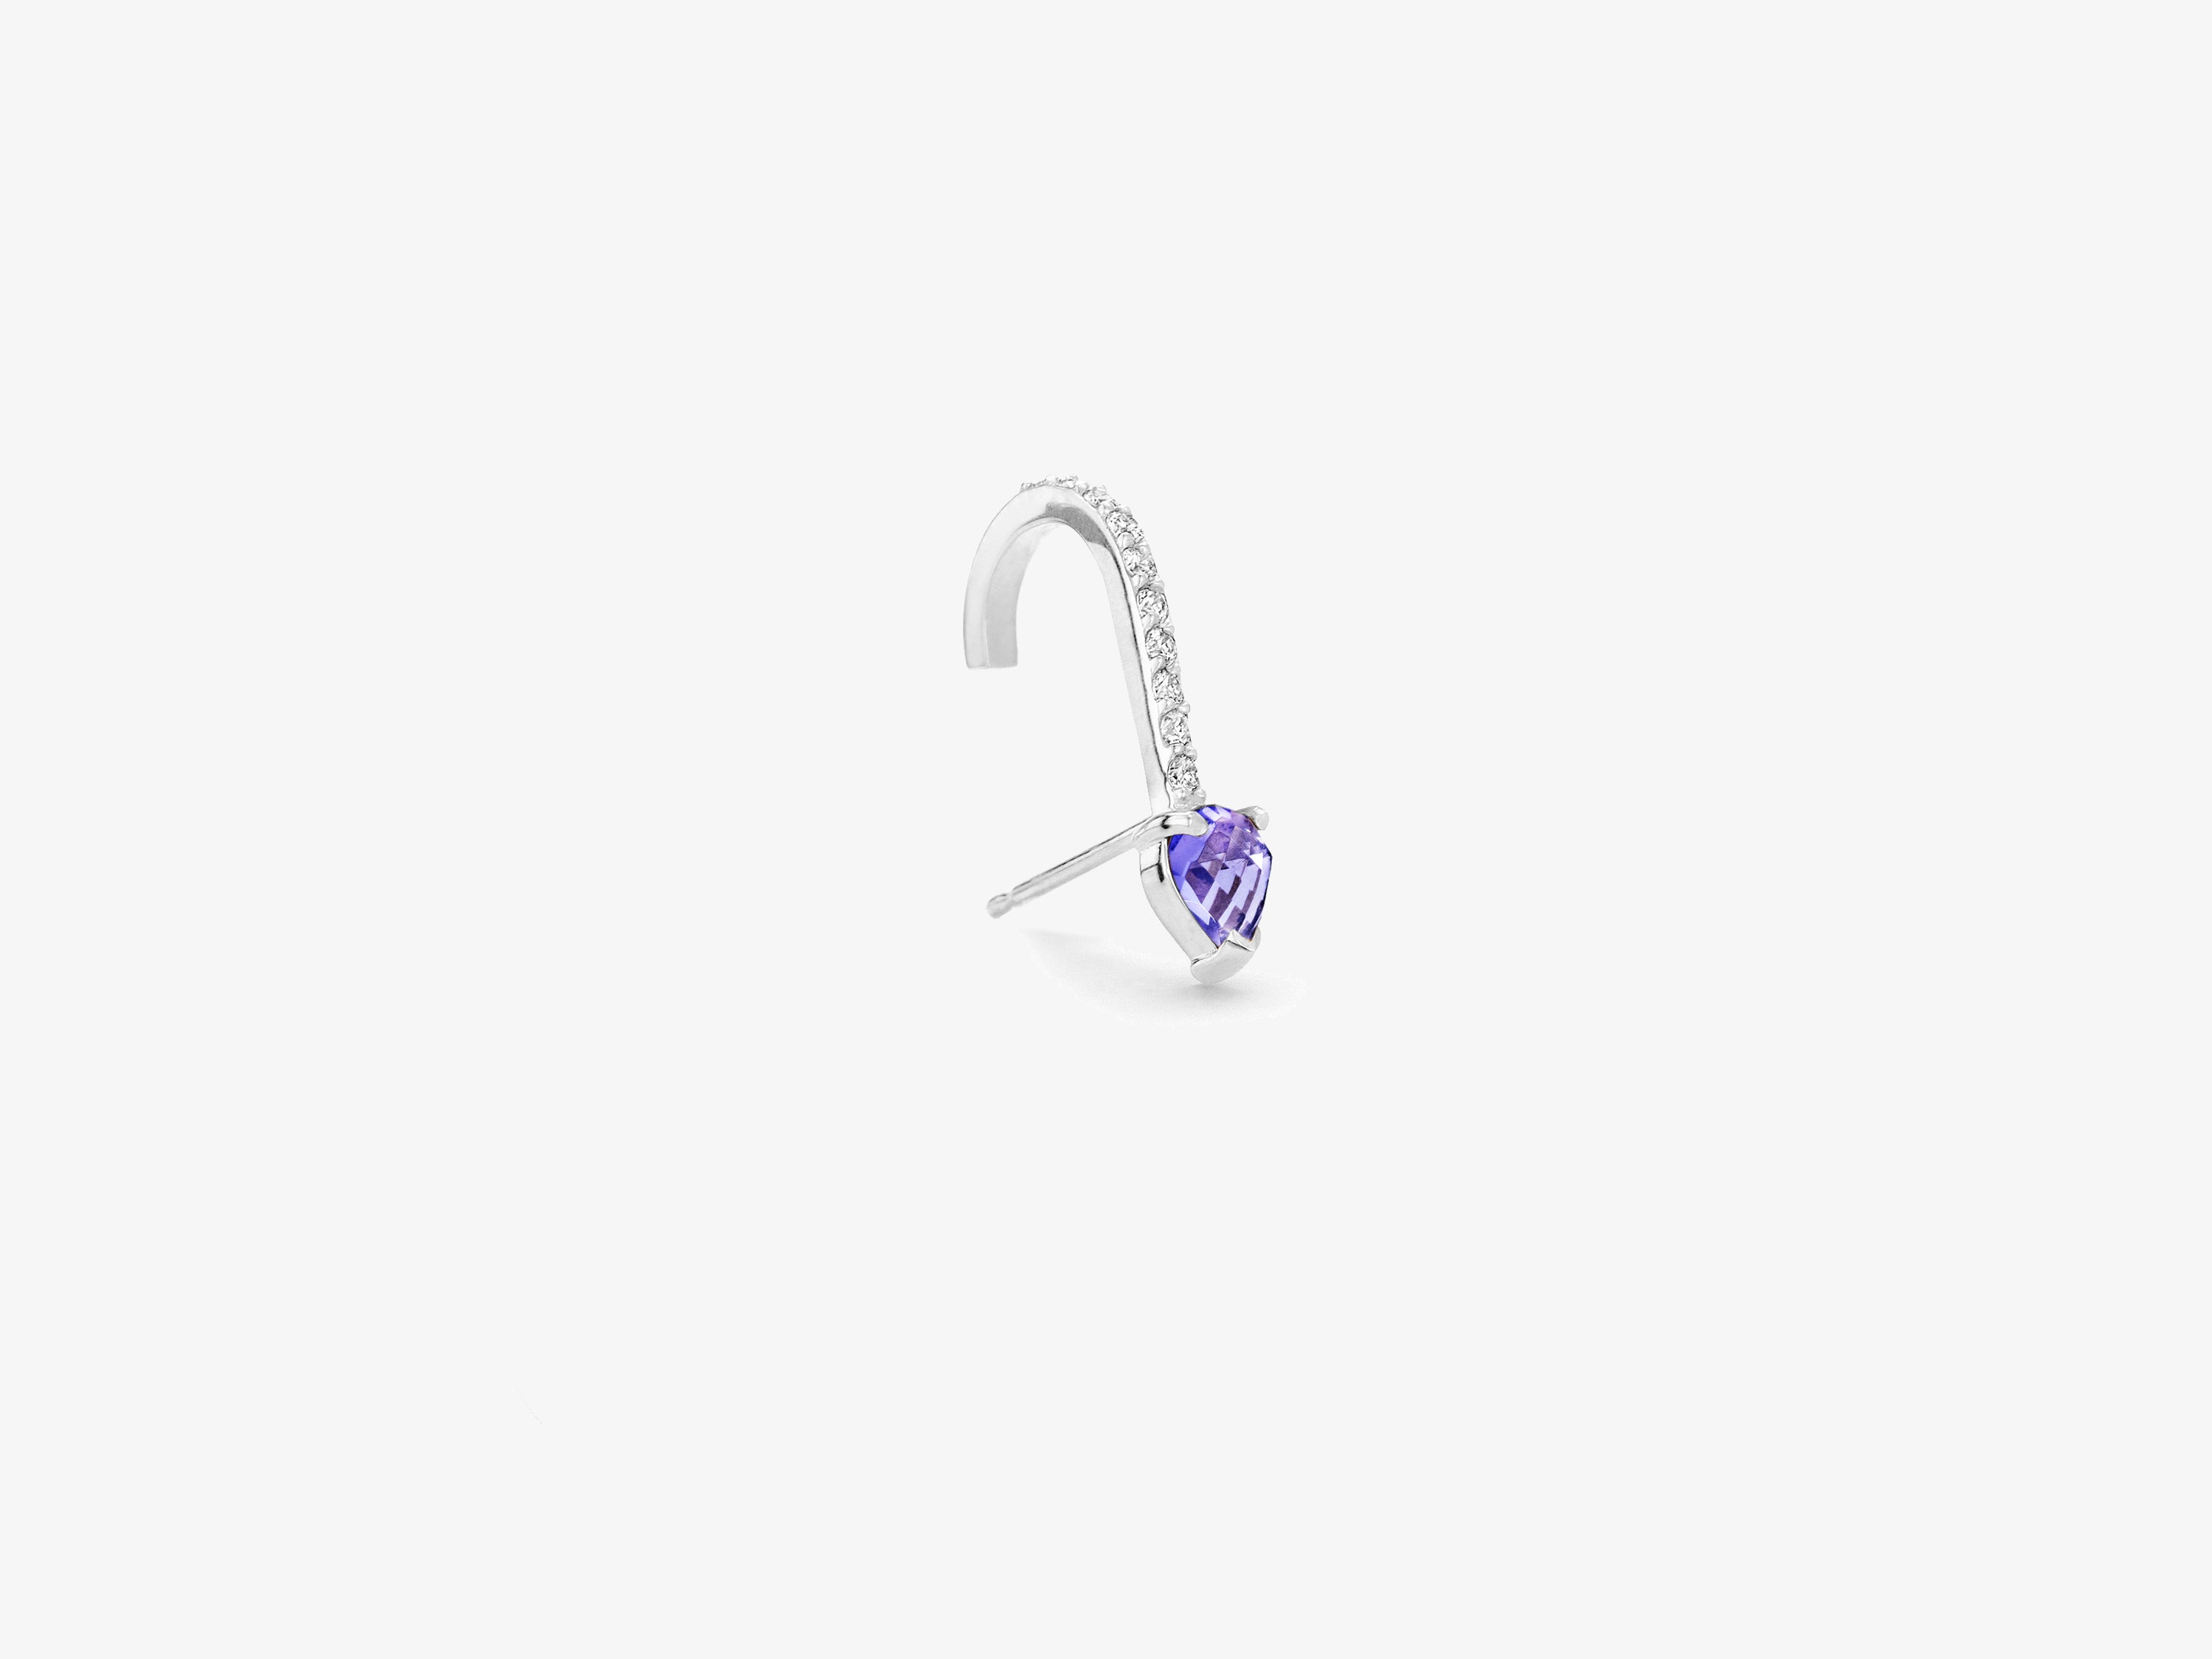 Single Diamond Pavé Suspender Earring with Rose Cut Sapphire